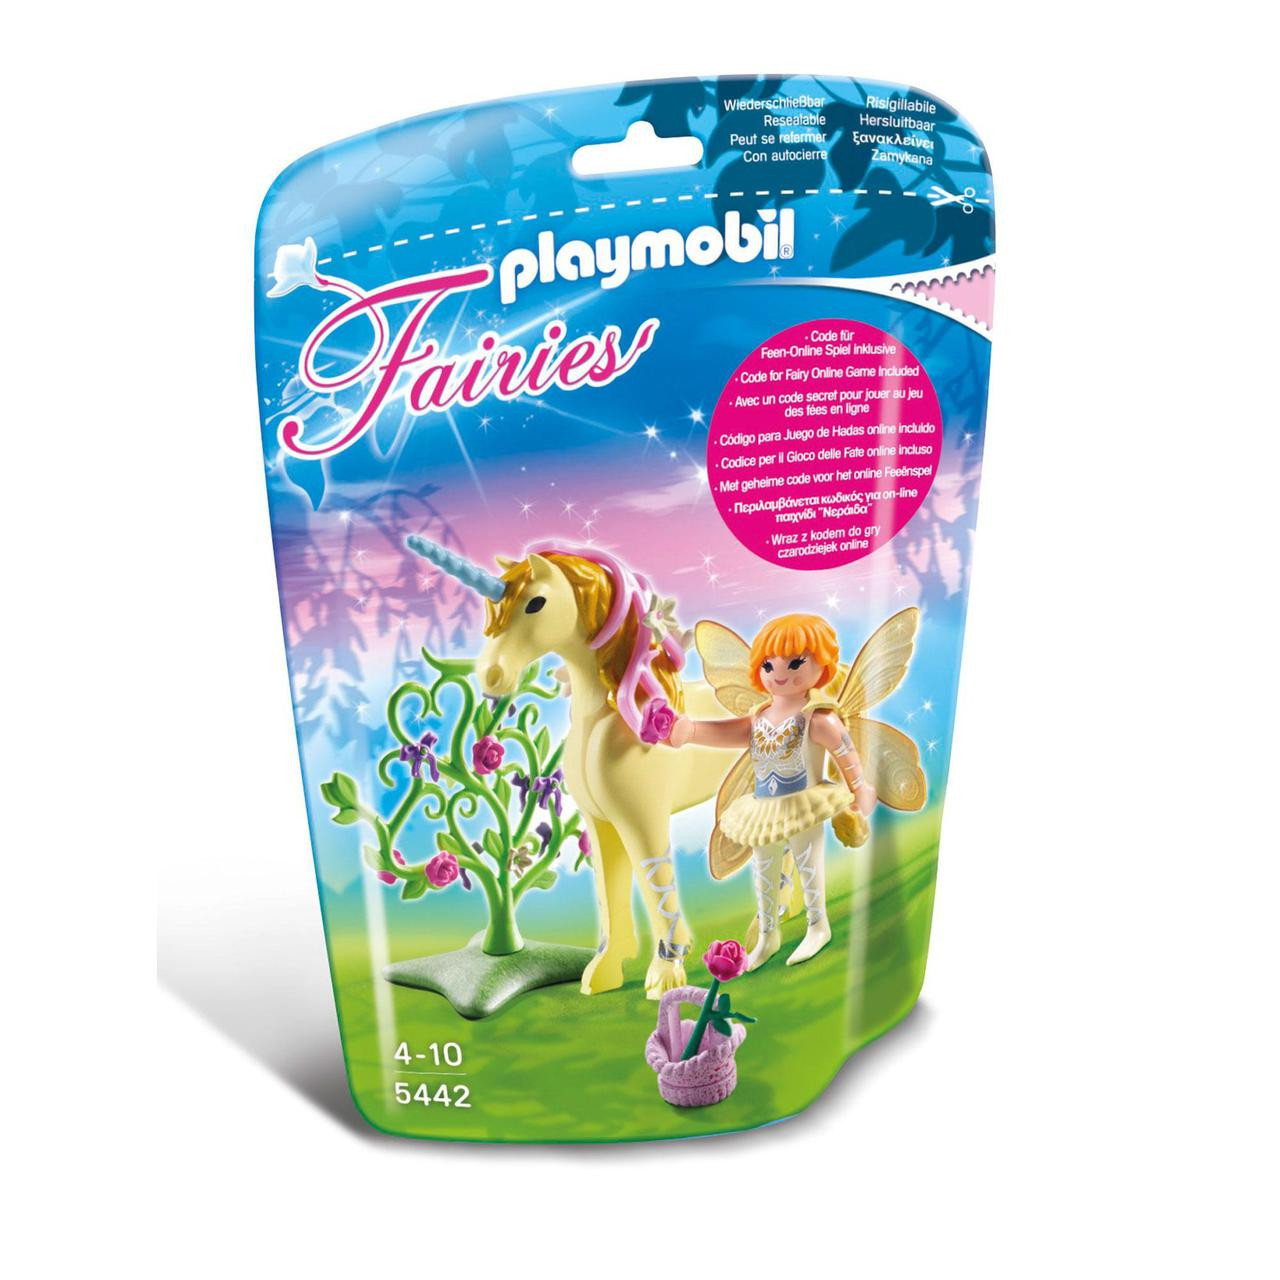 Playmobil-Fairy-Bags-Assortment